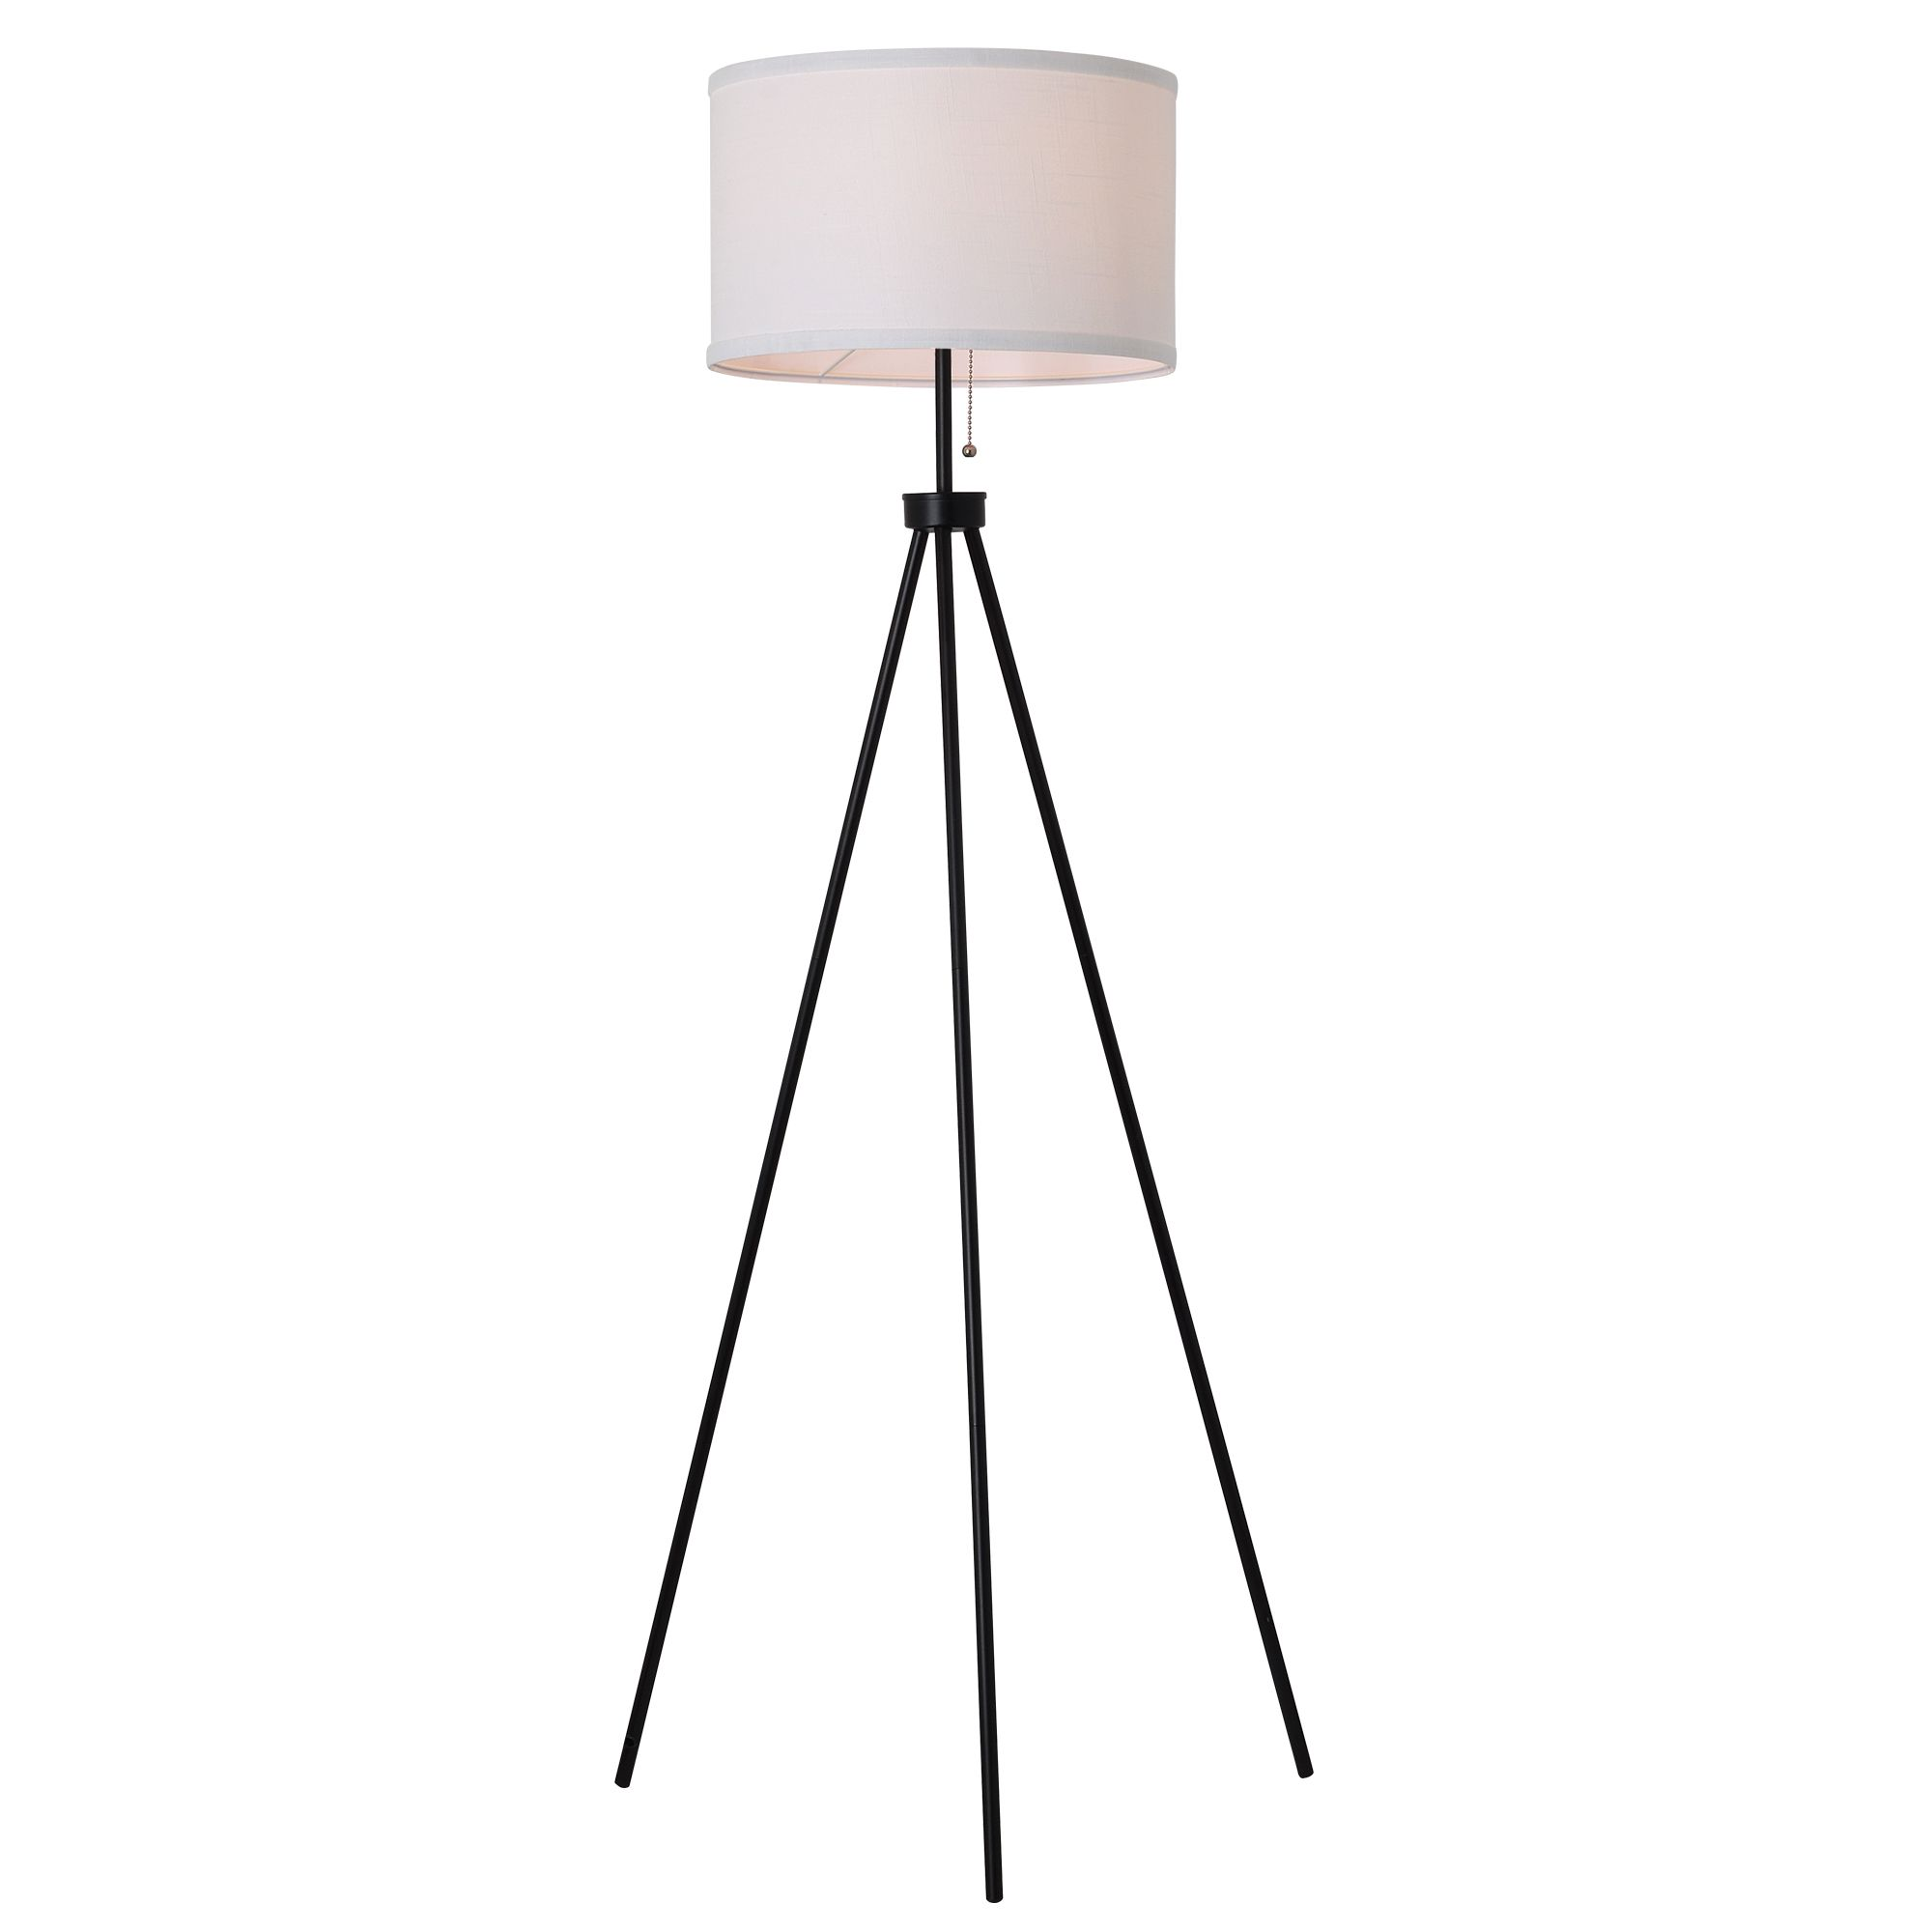 Home Floor Lamp Target Floor Lamps Black Floor Lamp